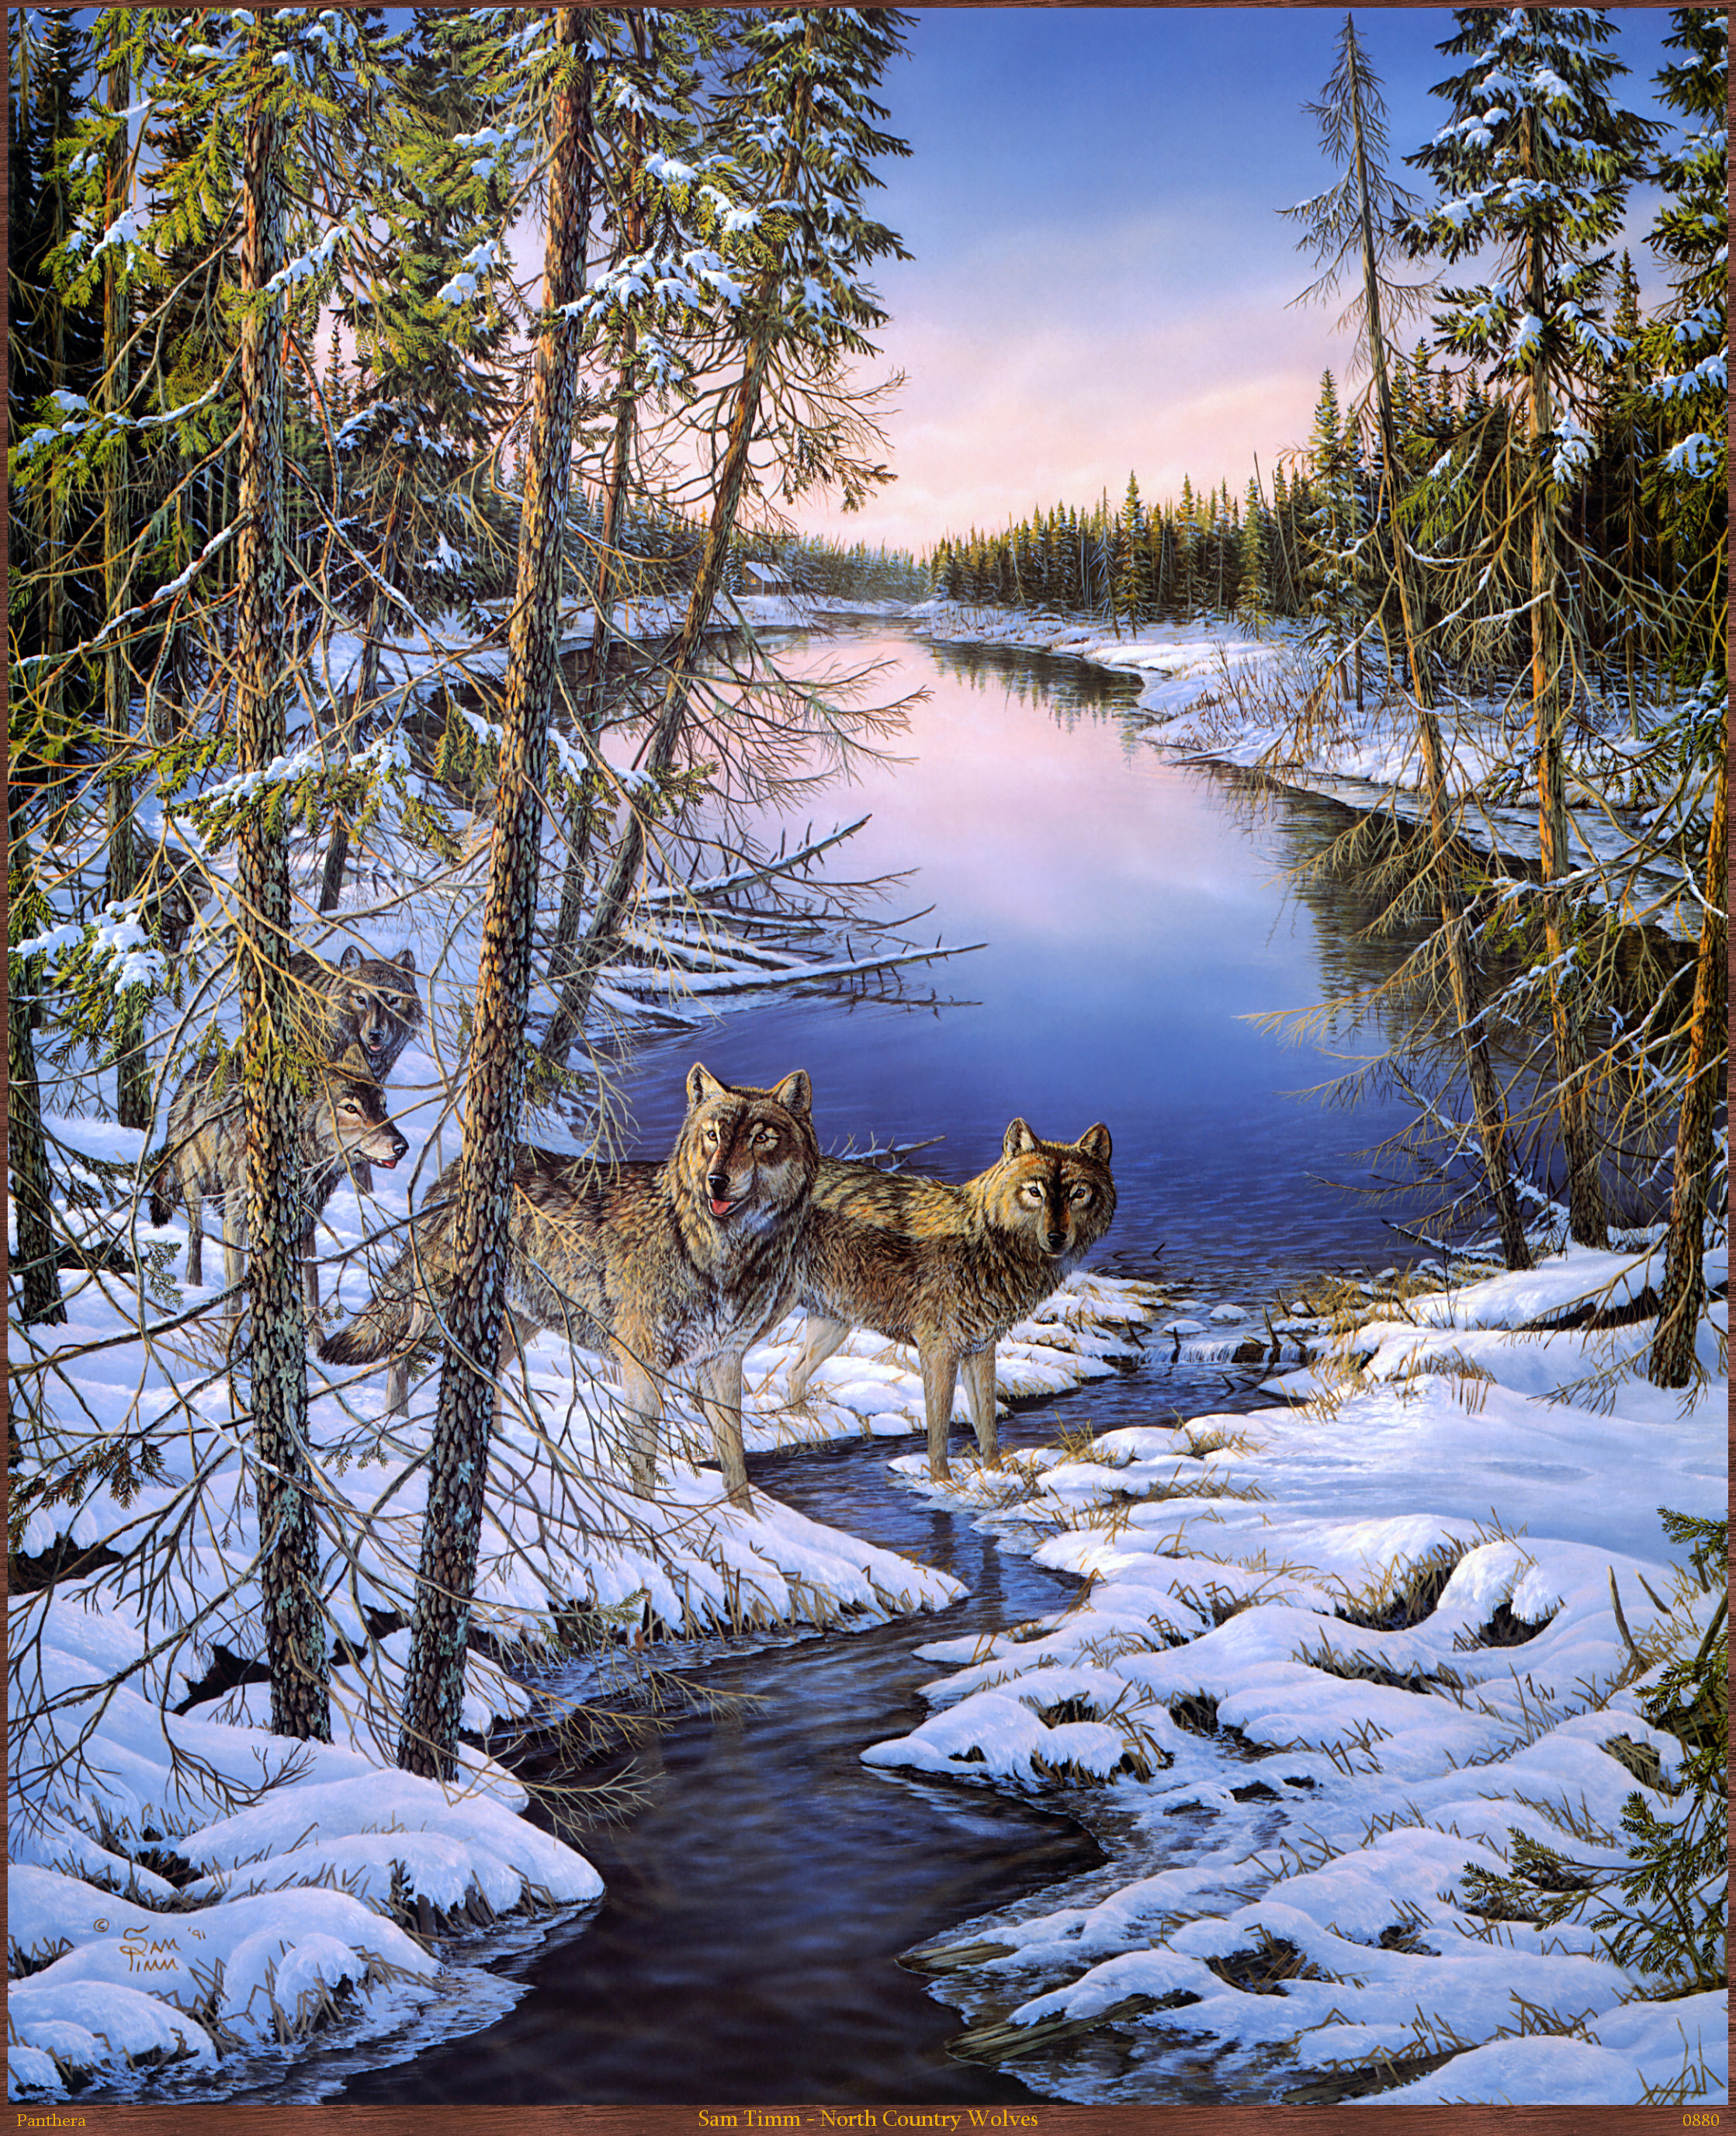 Panthera_0880_Sam_Timm_North_Country_Wolves; Image ONLY